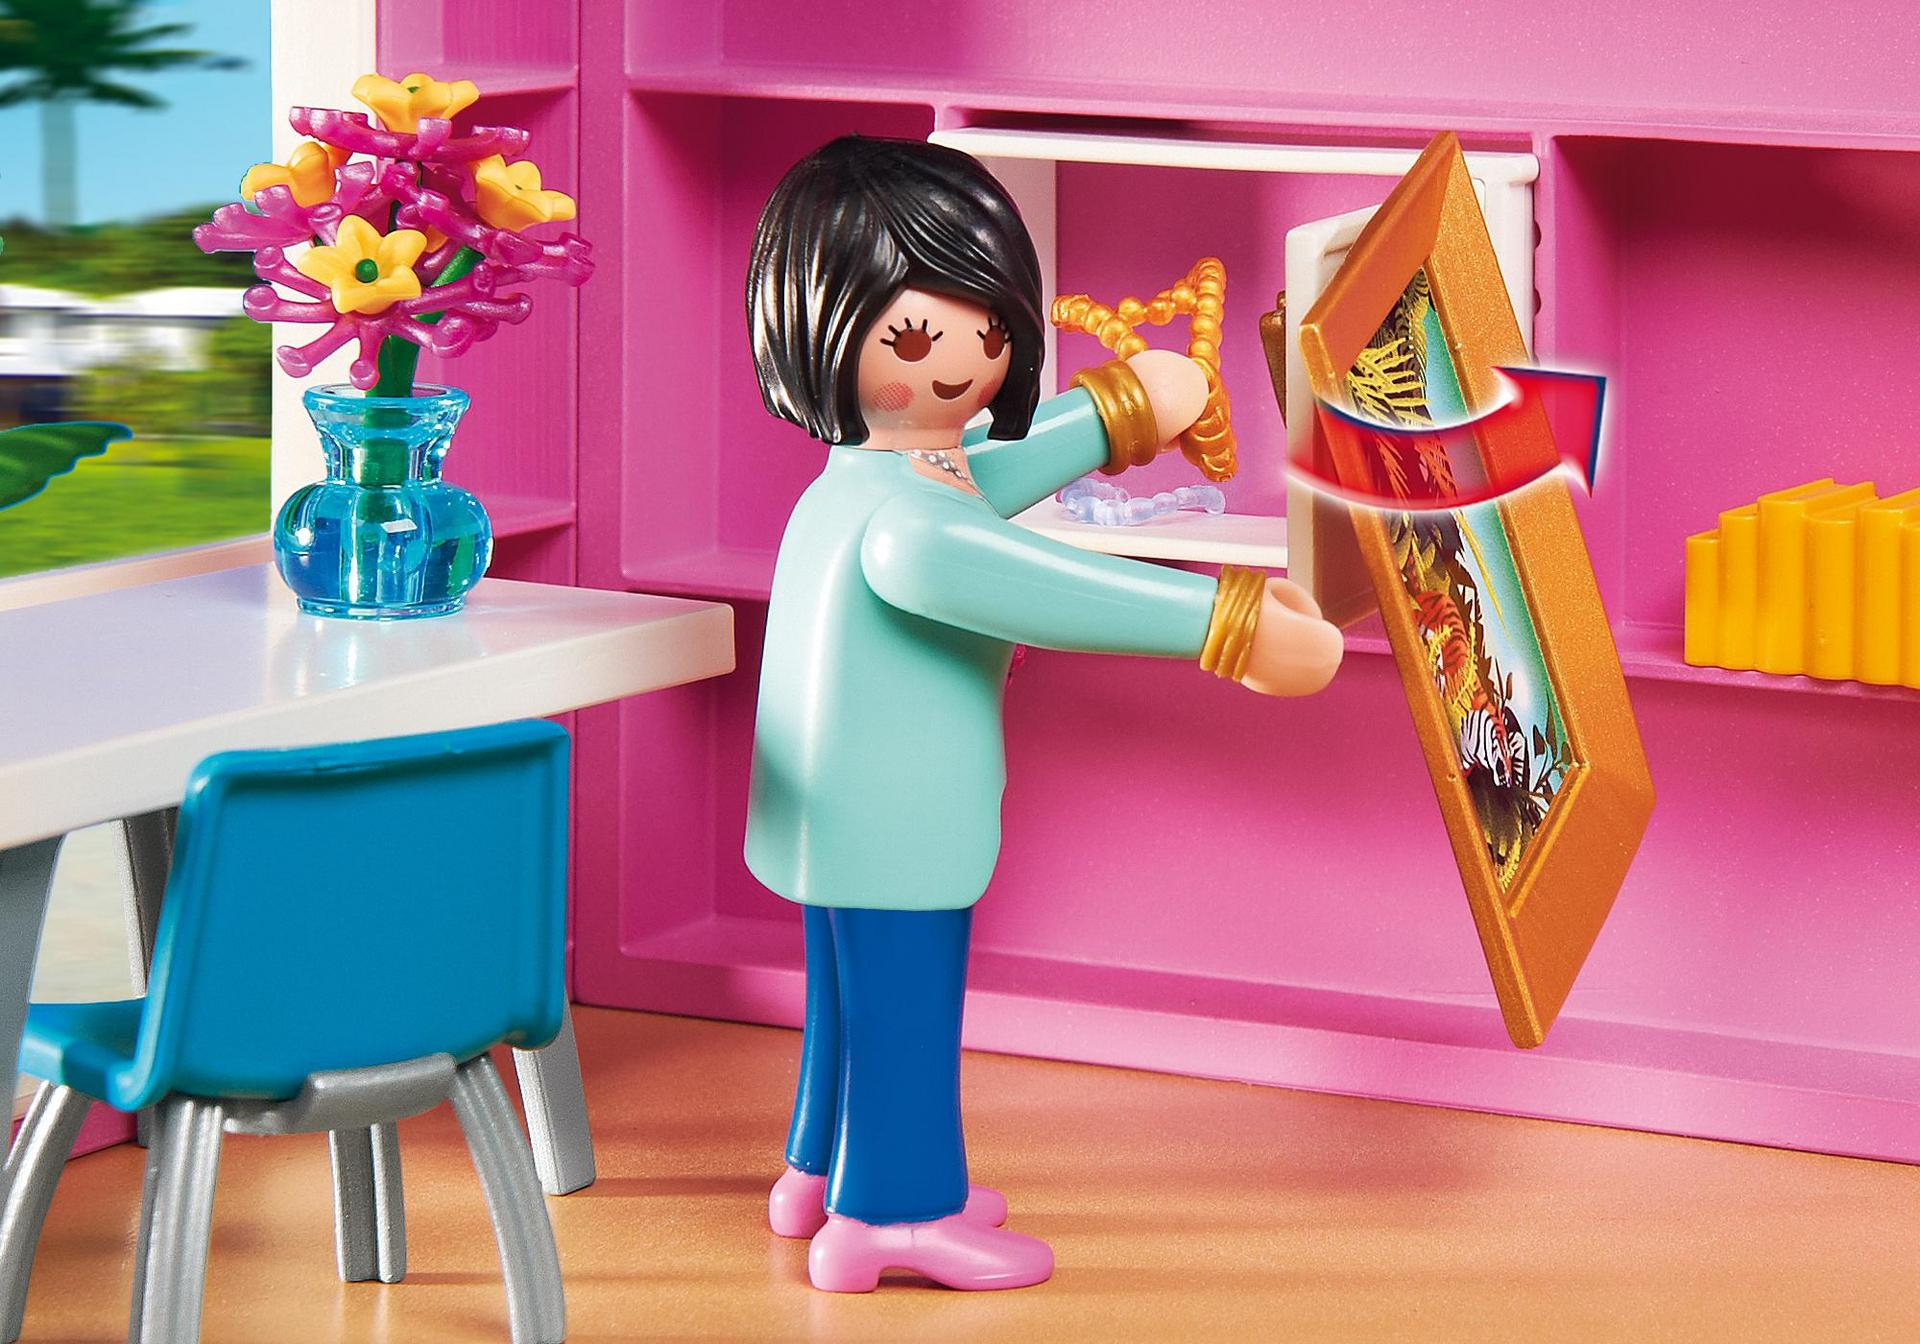 Beautiful Maison Moderne De Luxe Playmobil Ideas - Awesome Interior ...